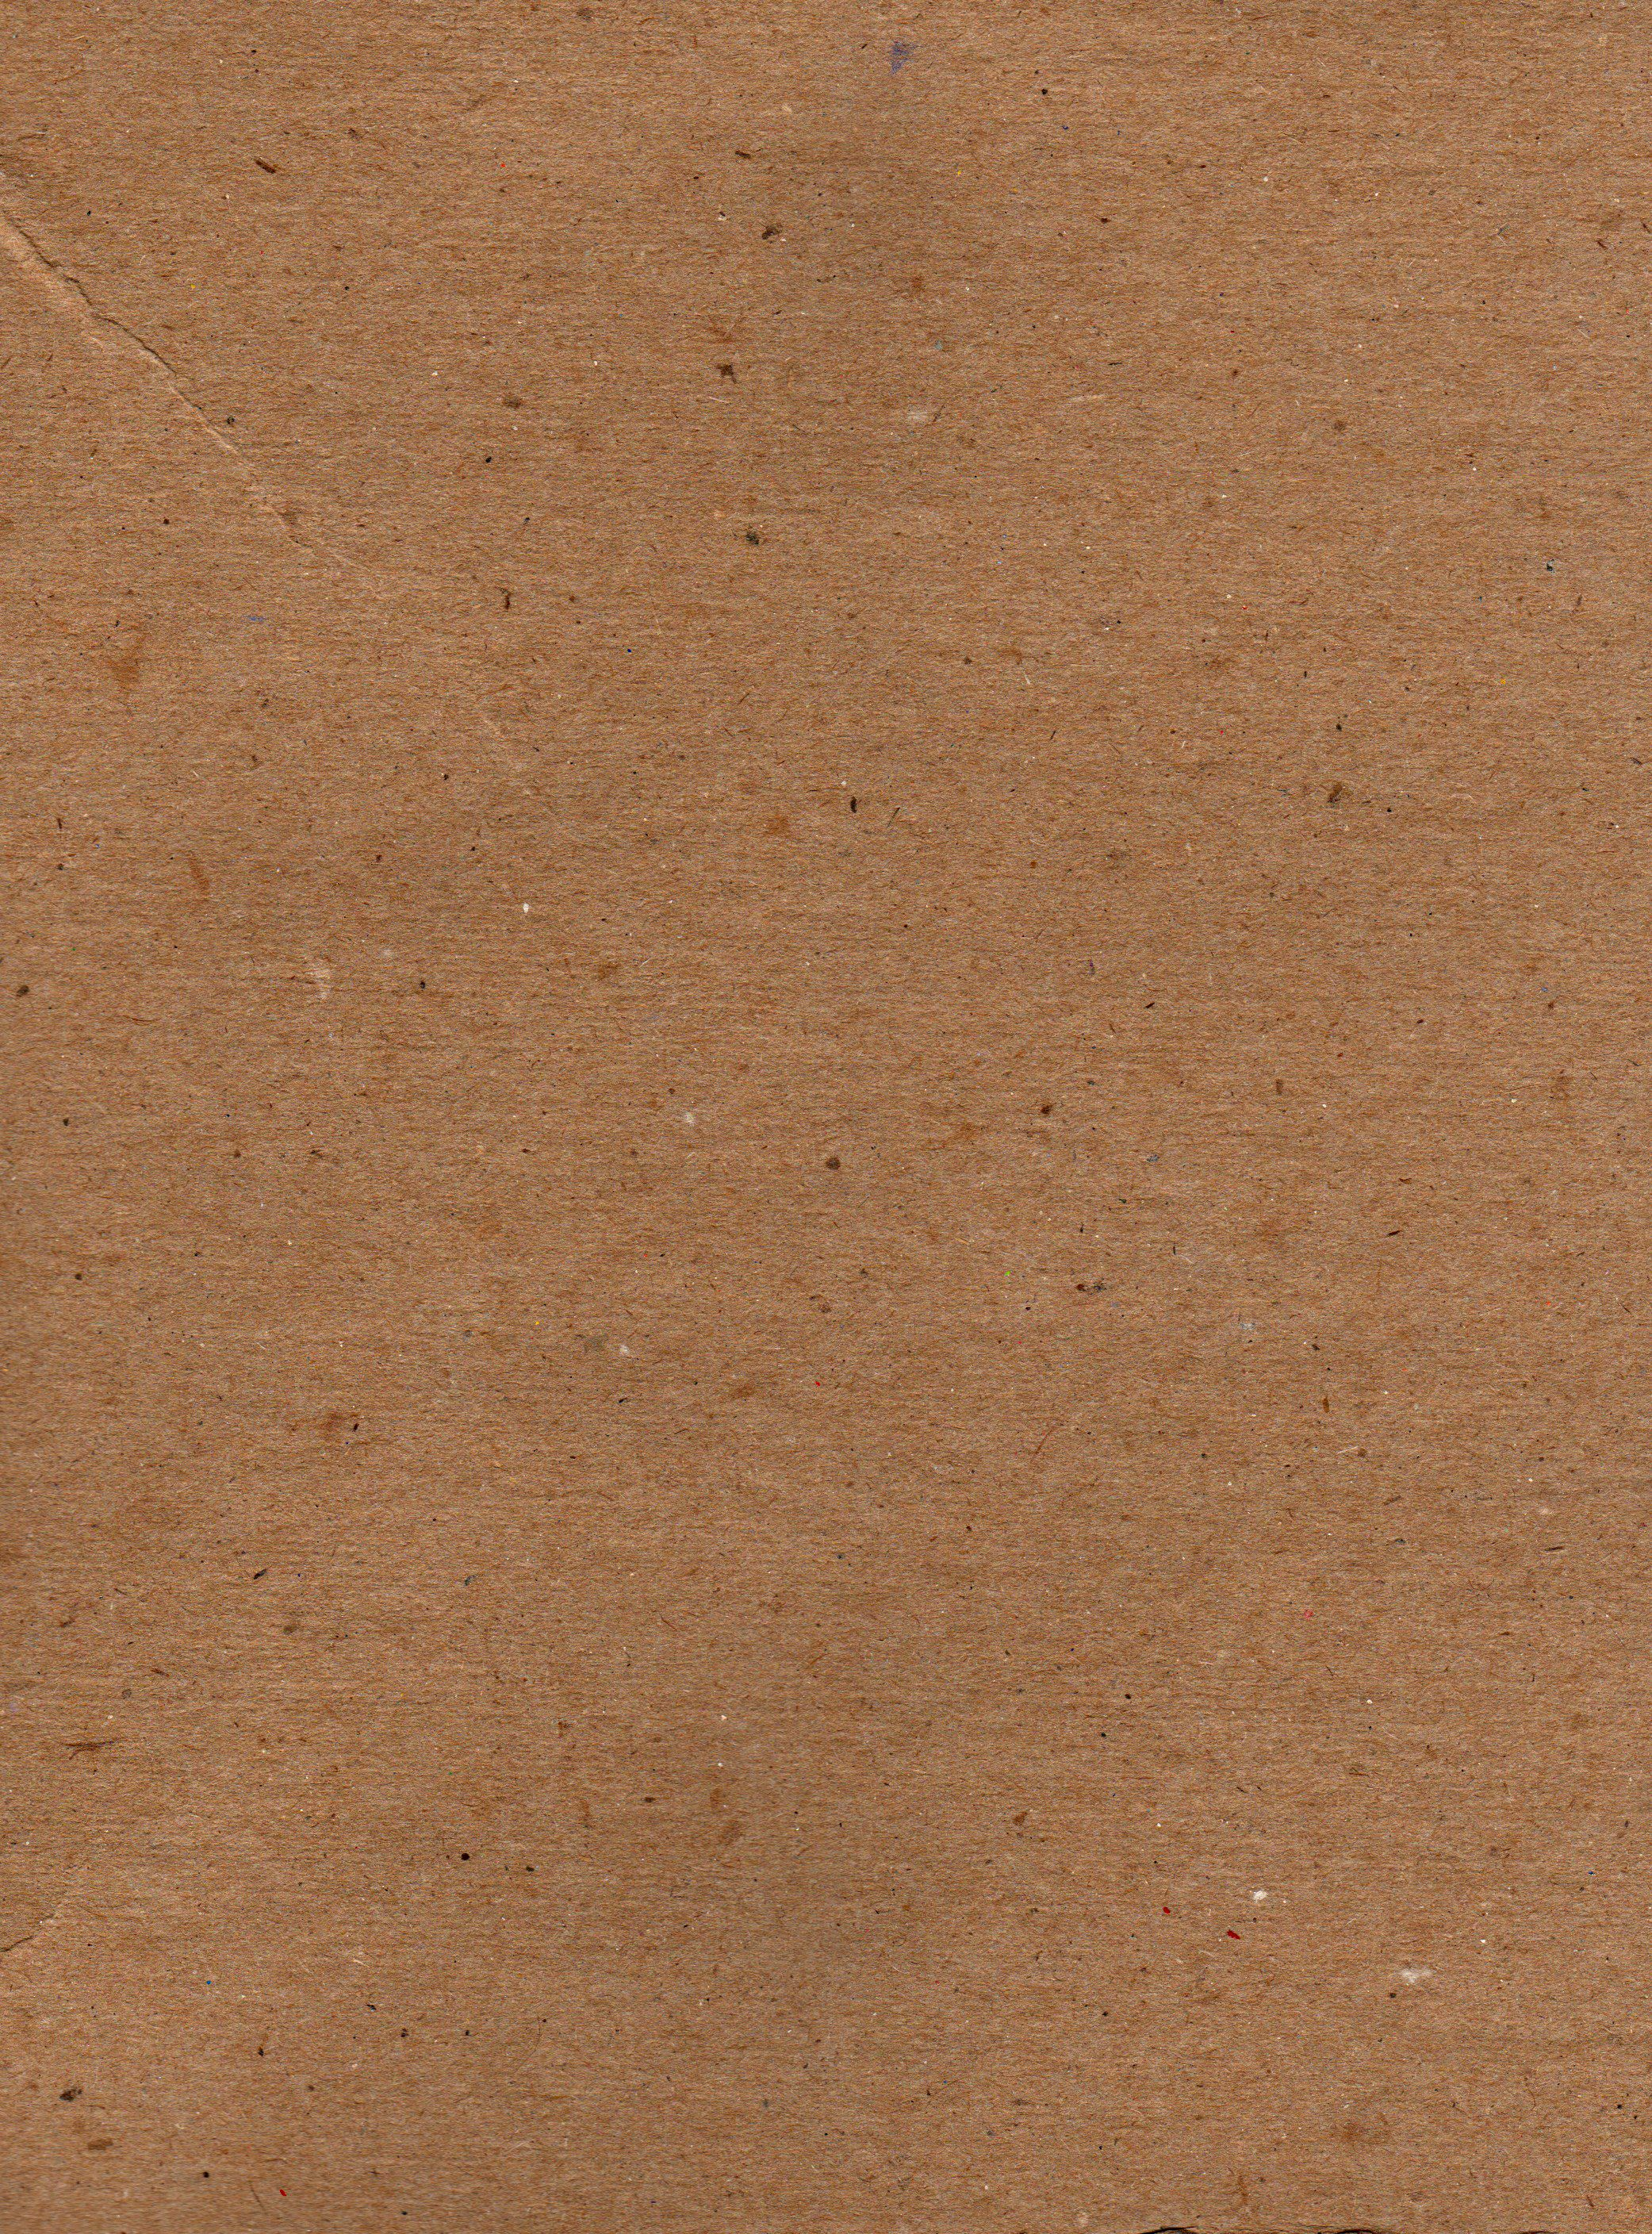 brown paper bag texture textures patterns amp backgrounds